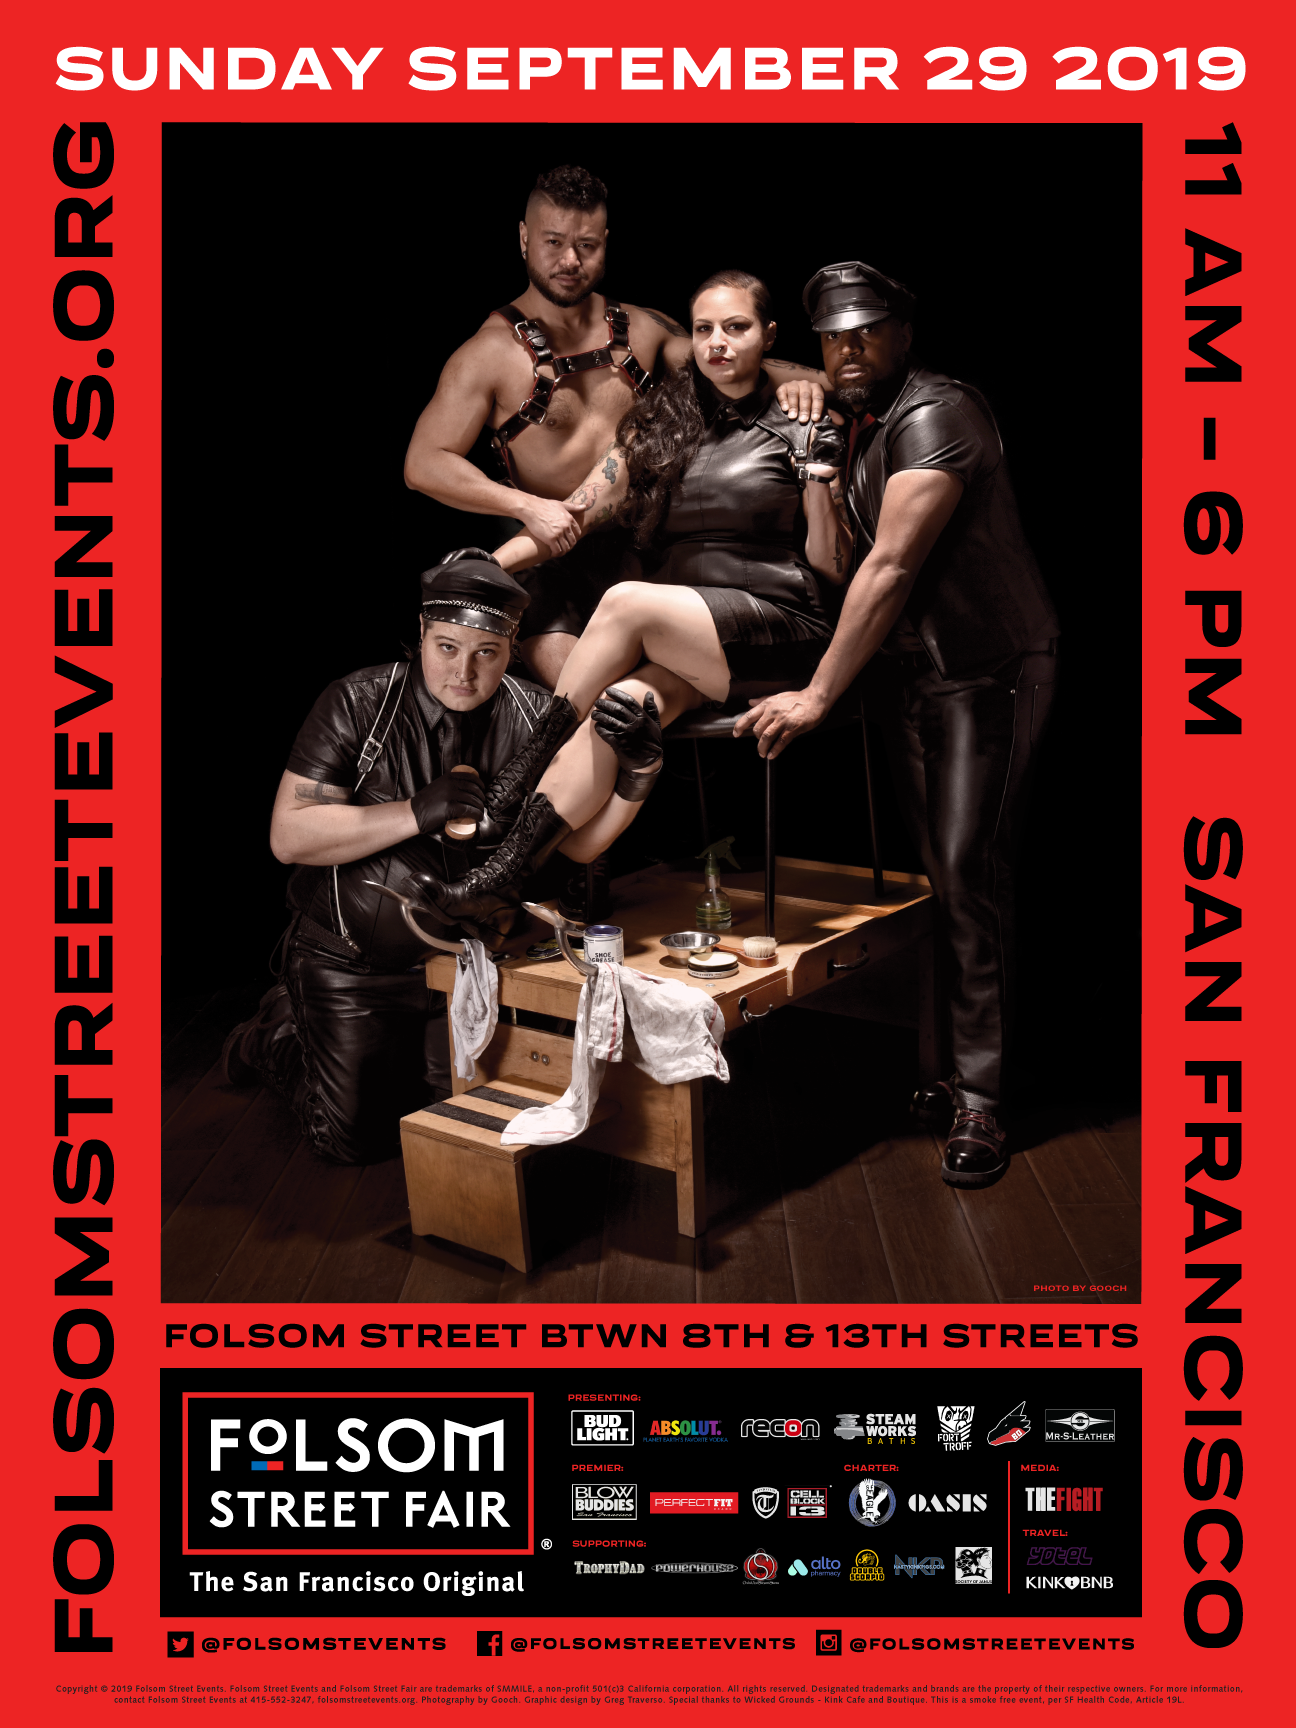 Image of 2019 Folsom Street Fair Poster